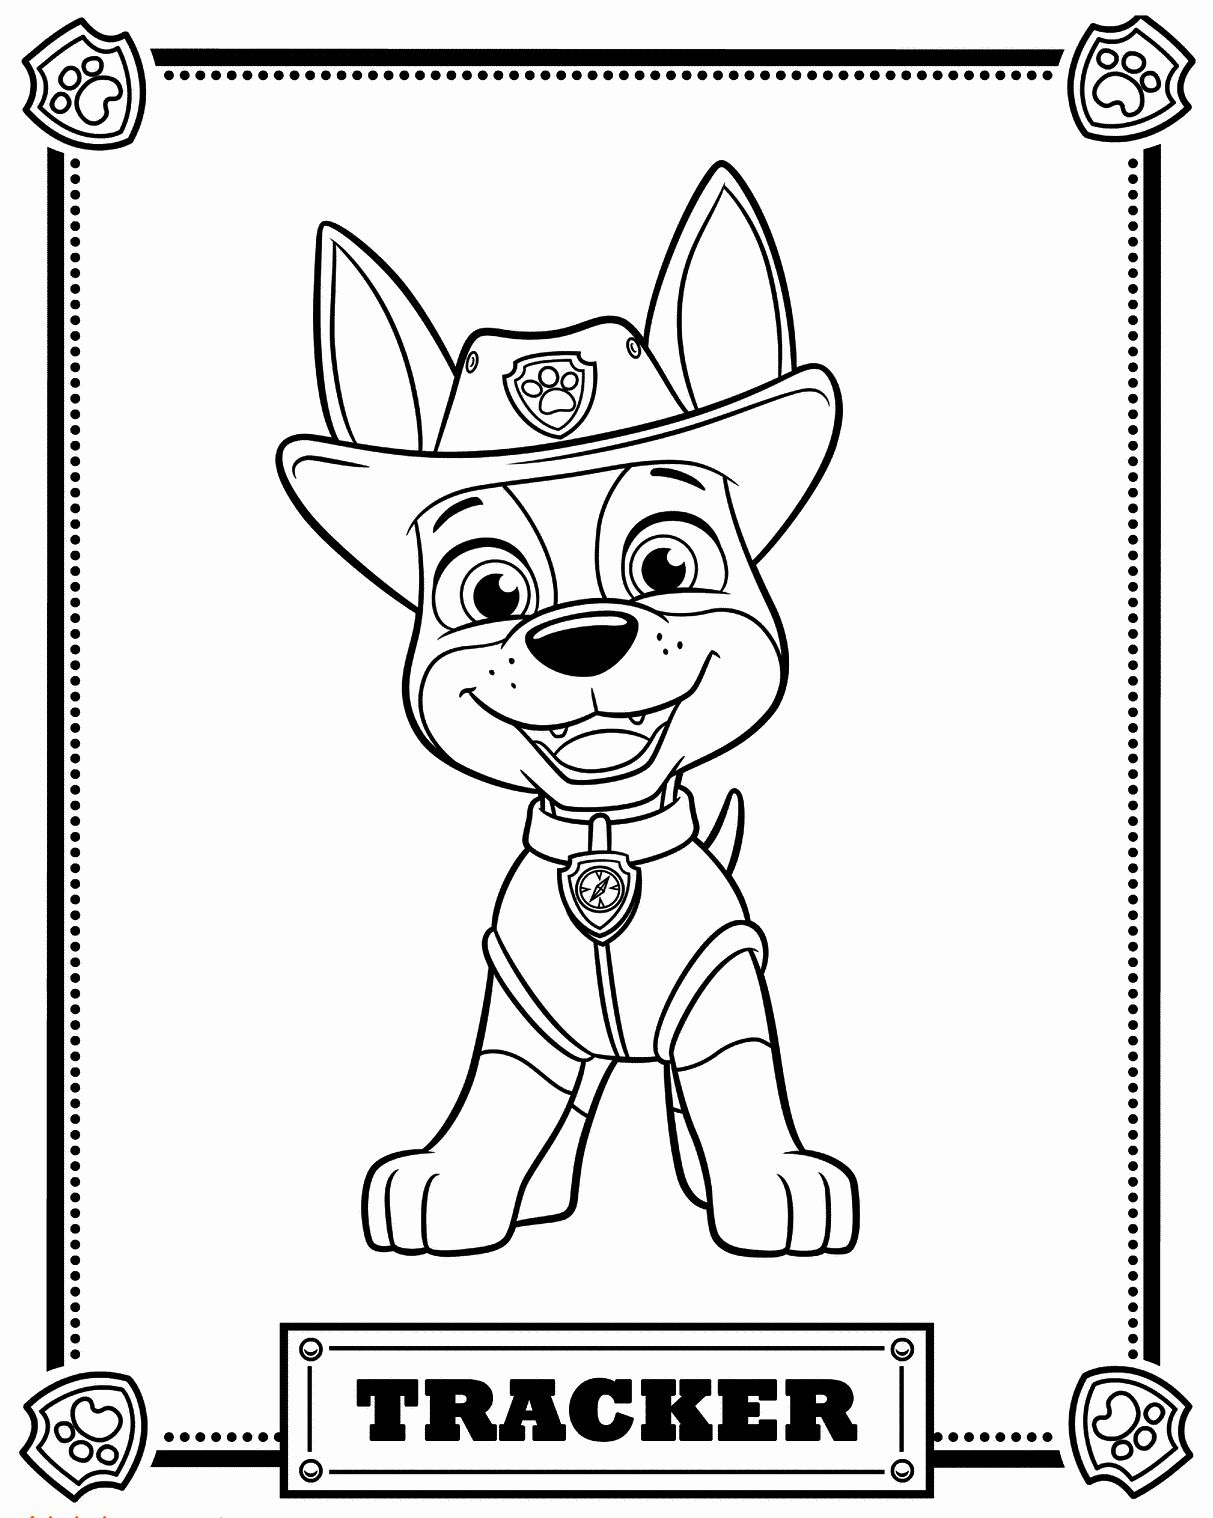 Coloring Pages Paw Patrol In 2020 Paw Patrol Coloring Paw Patrol Coloring Pages Paw Patrol Printables